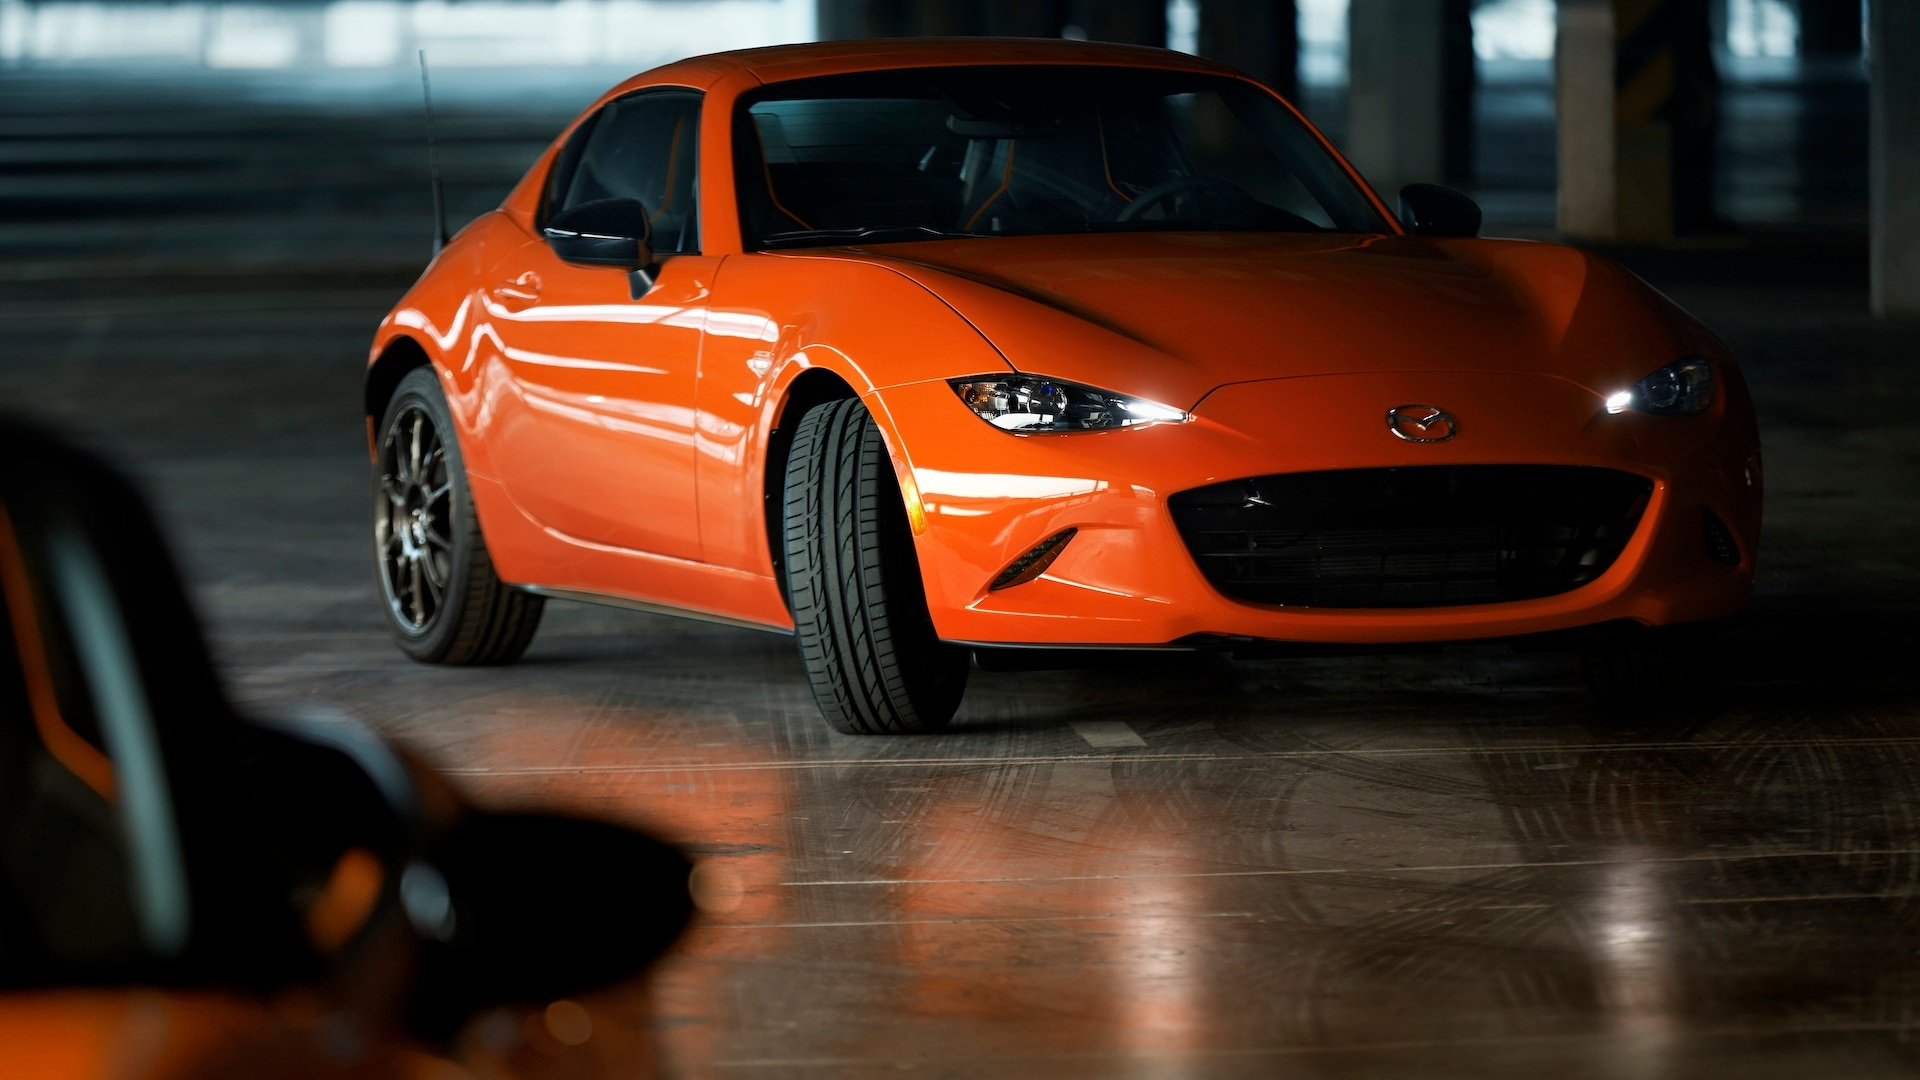 Mazda Celebrates Miata's 30th Anniversary With New Special Edition